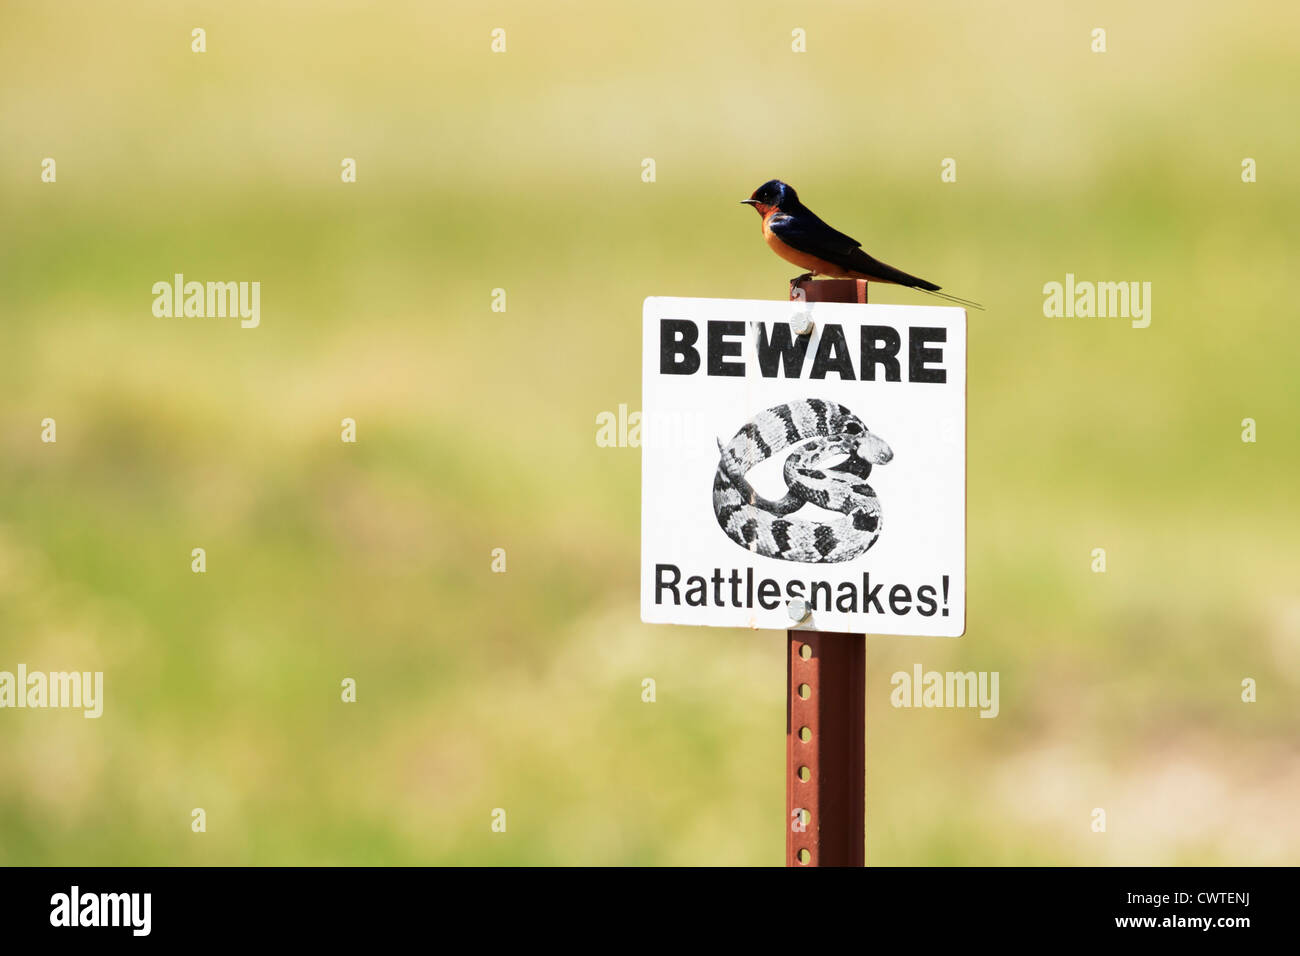 A swallow perches on top of a Beware Rattlesnakes sign in the South Dakota Badlands. - Stock Image